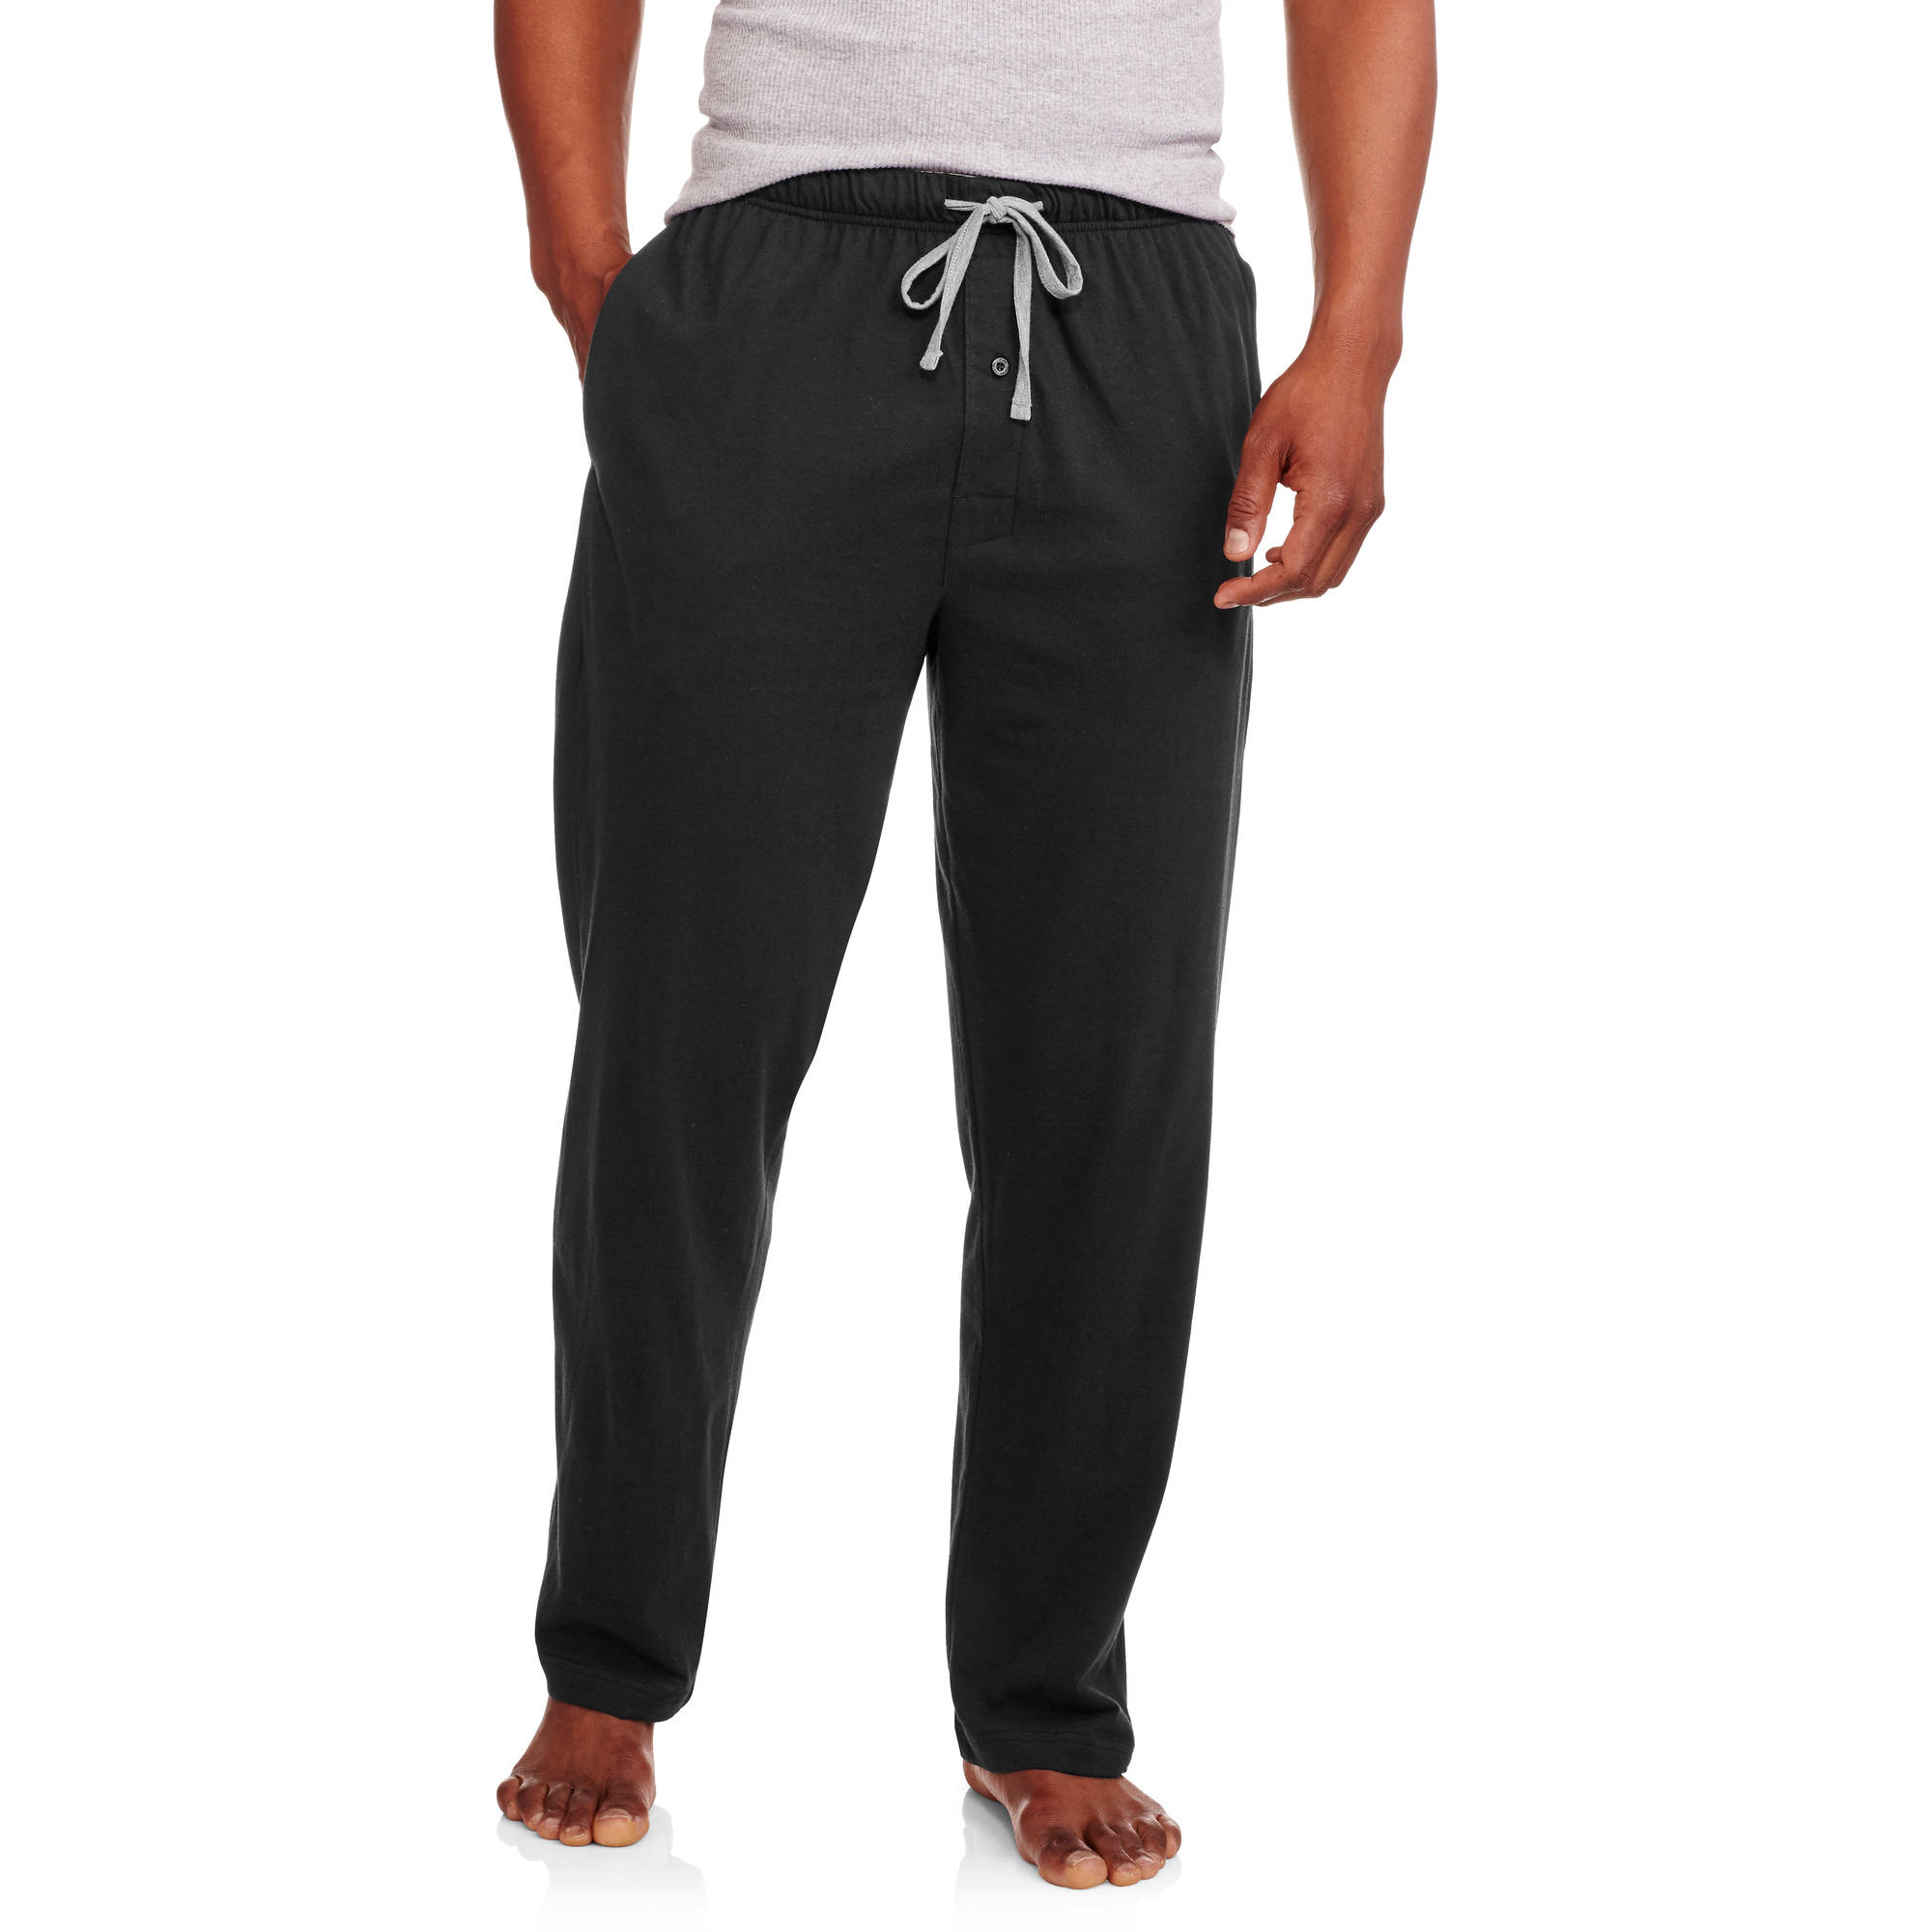 Men's Big X-Temp Solid Knit Sleep Pant with Hanes Logo Inside Elastic